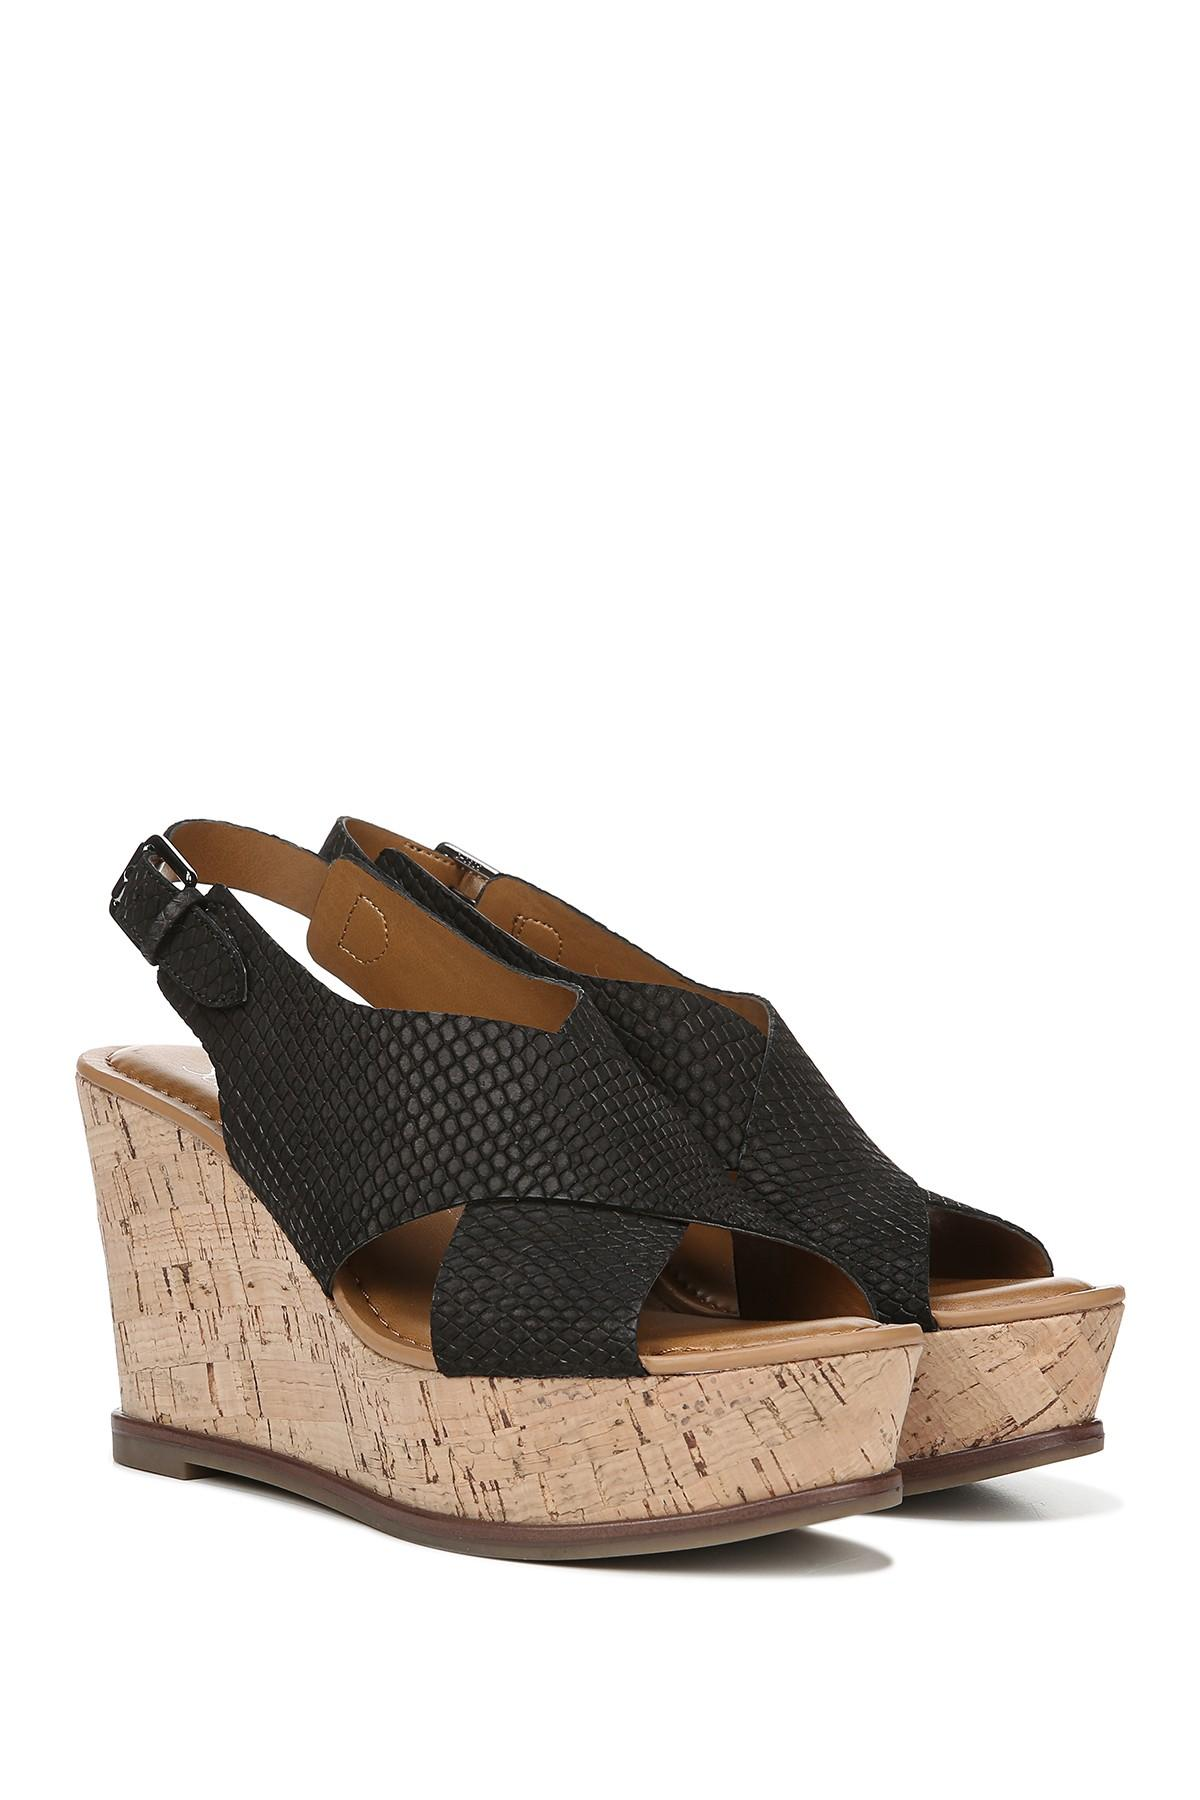 12d5c338d9 Franco Sarto - Black Mackenzie Snake Embossed Leather Wedge Sandal - Lyst.  View fullscreen